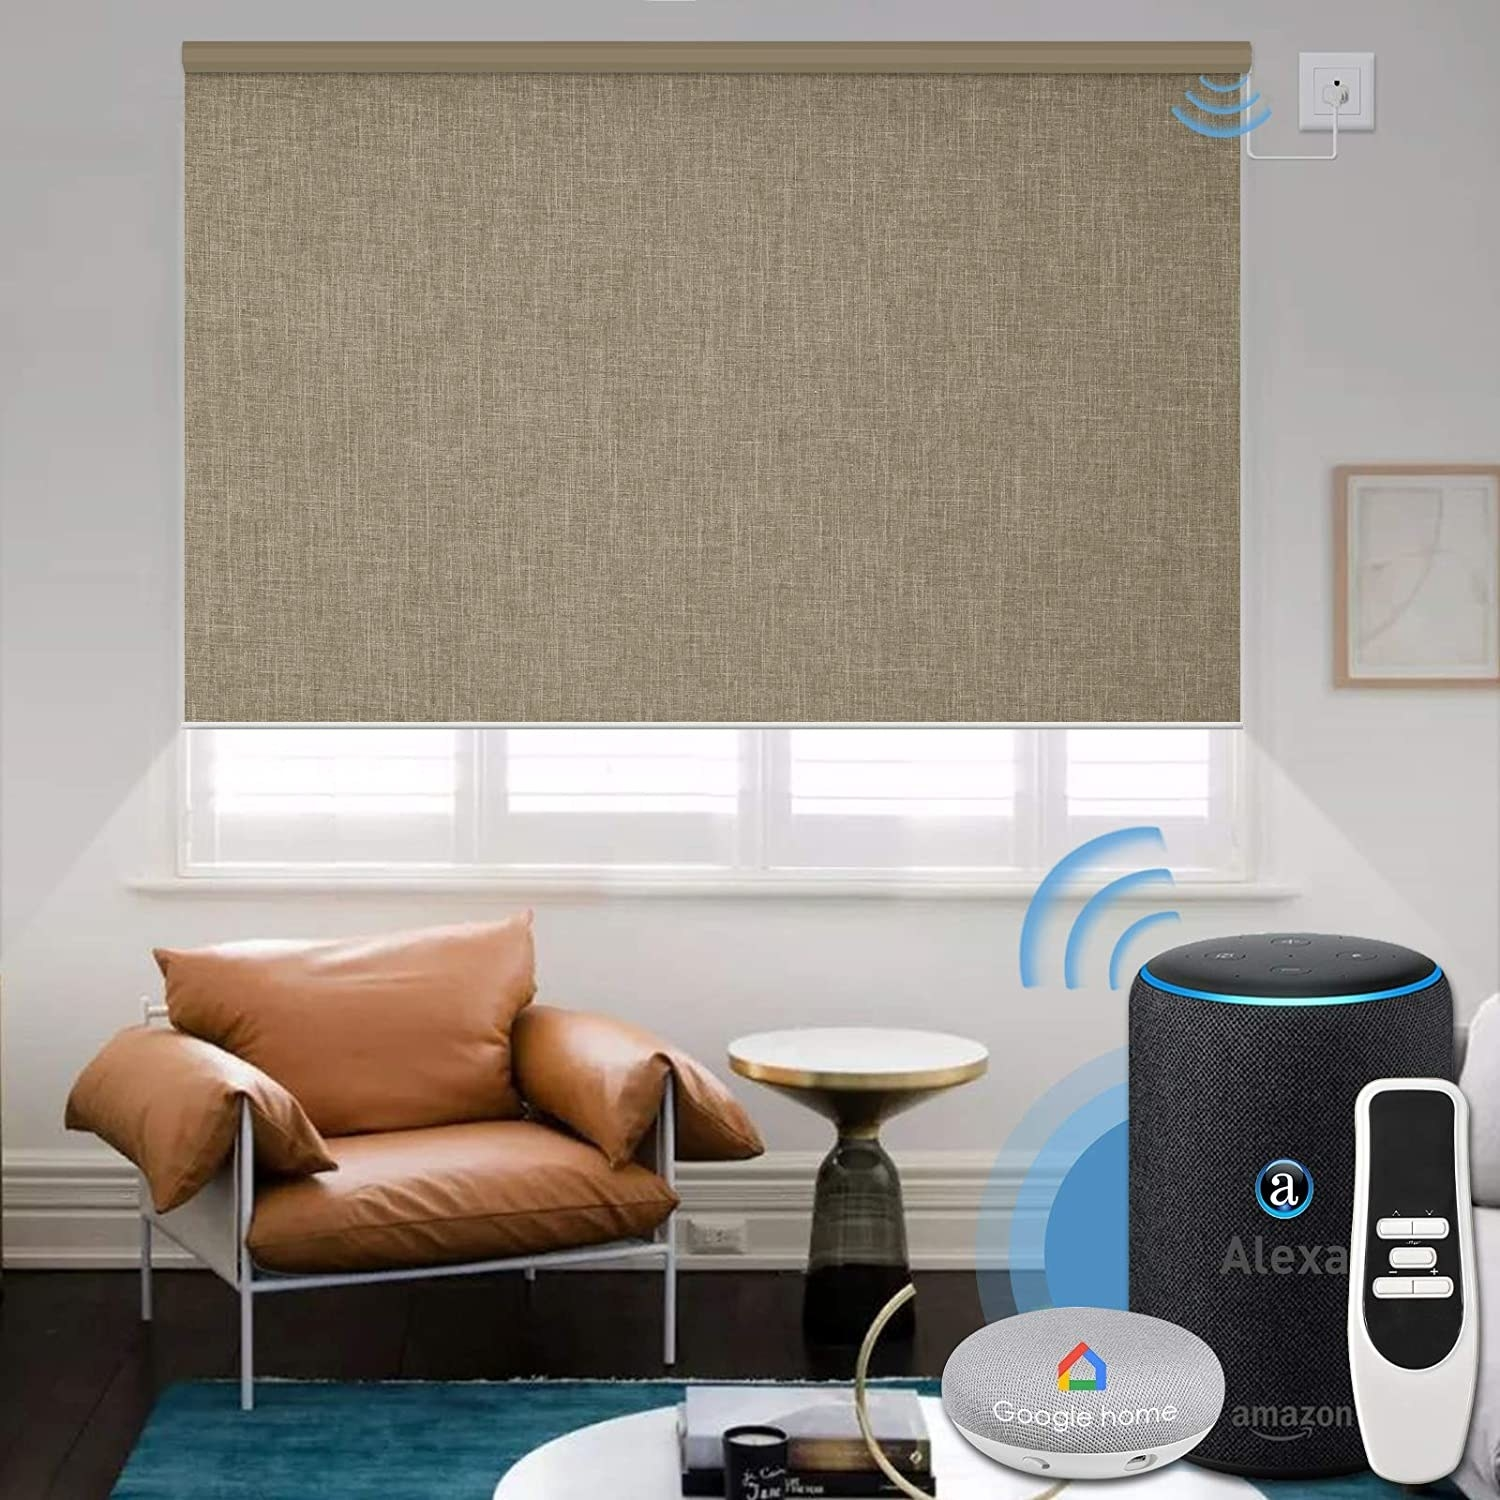 The shades in coffee and a display that shows they can be controlled via Alexa, Google Home, or an included remote